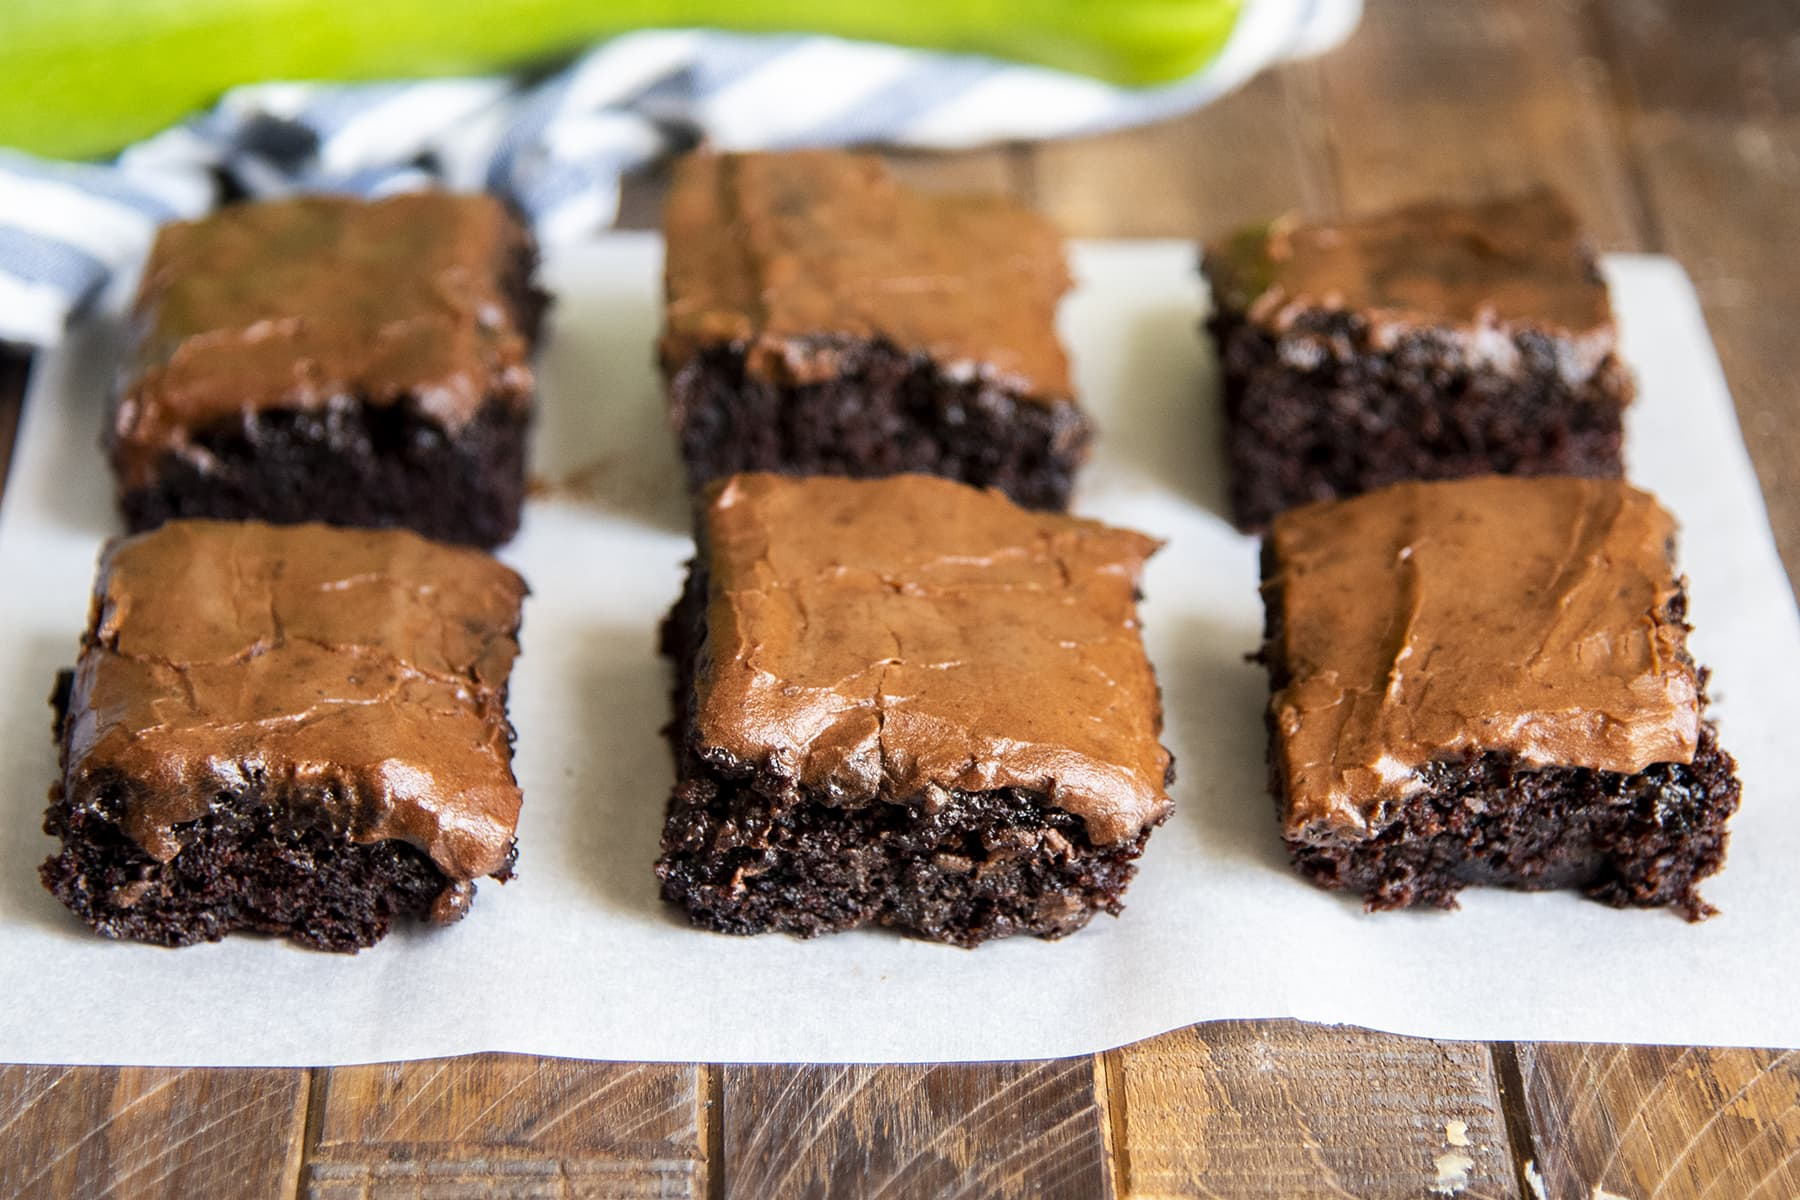 Six frosted brownies on a piece of parchment paper.